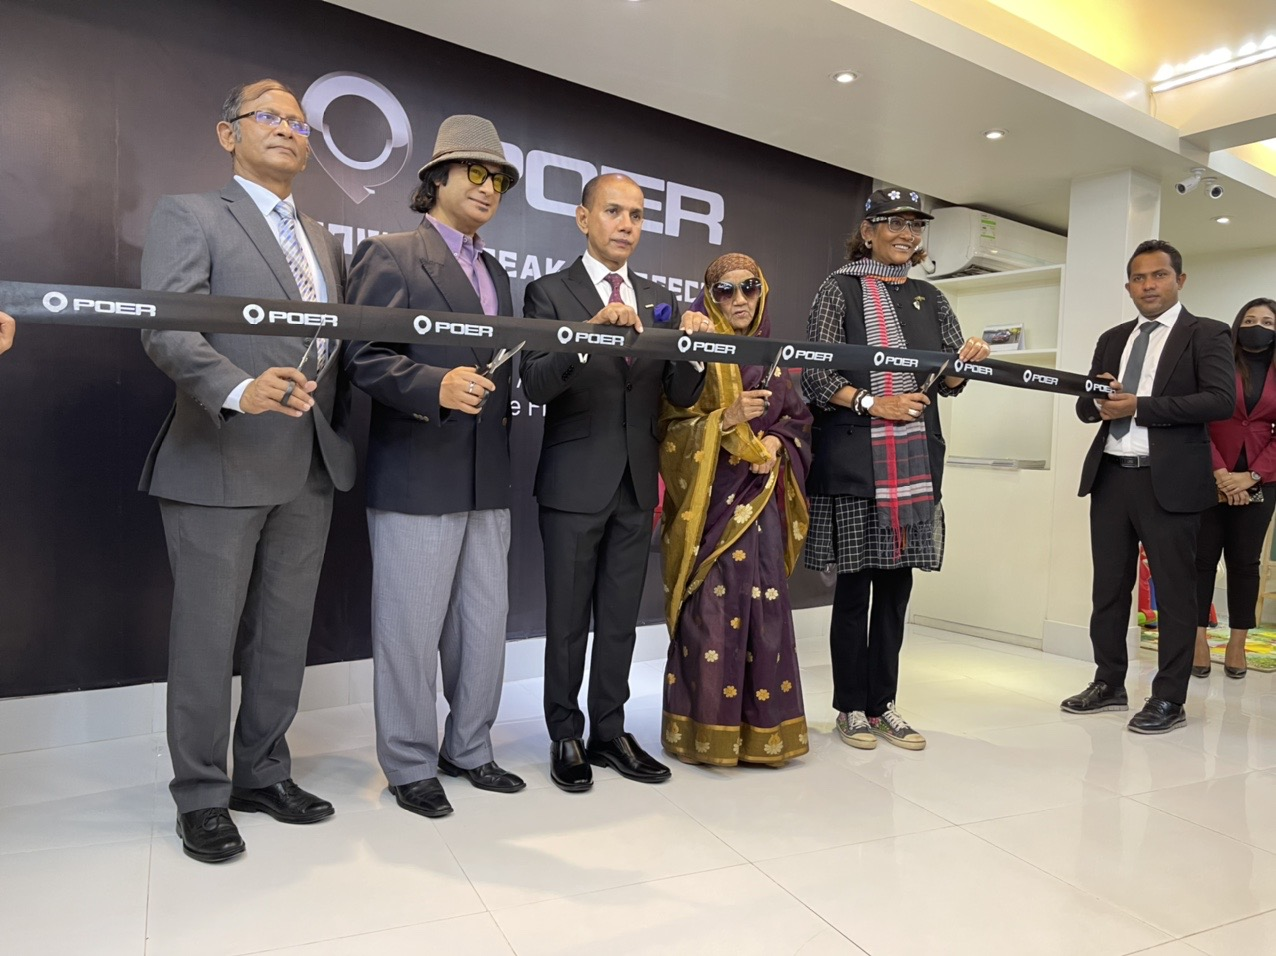 Poer launching images selected by CEO sir (14)